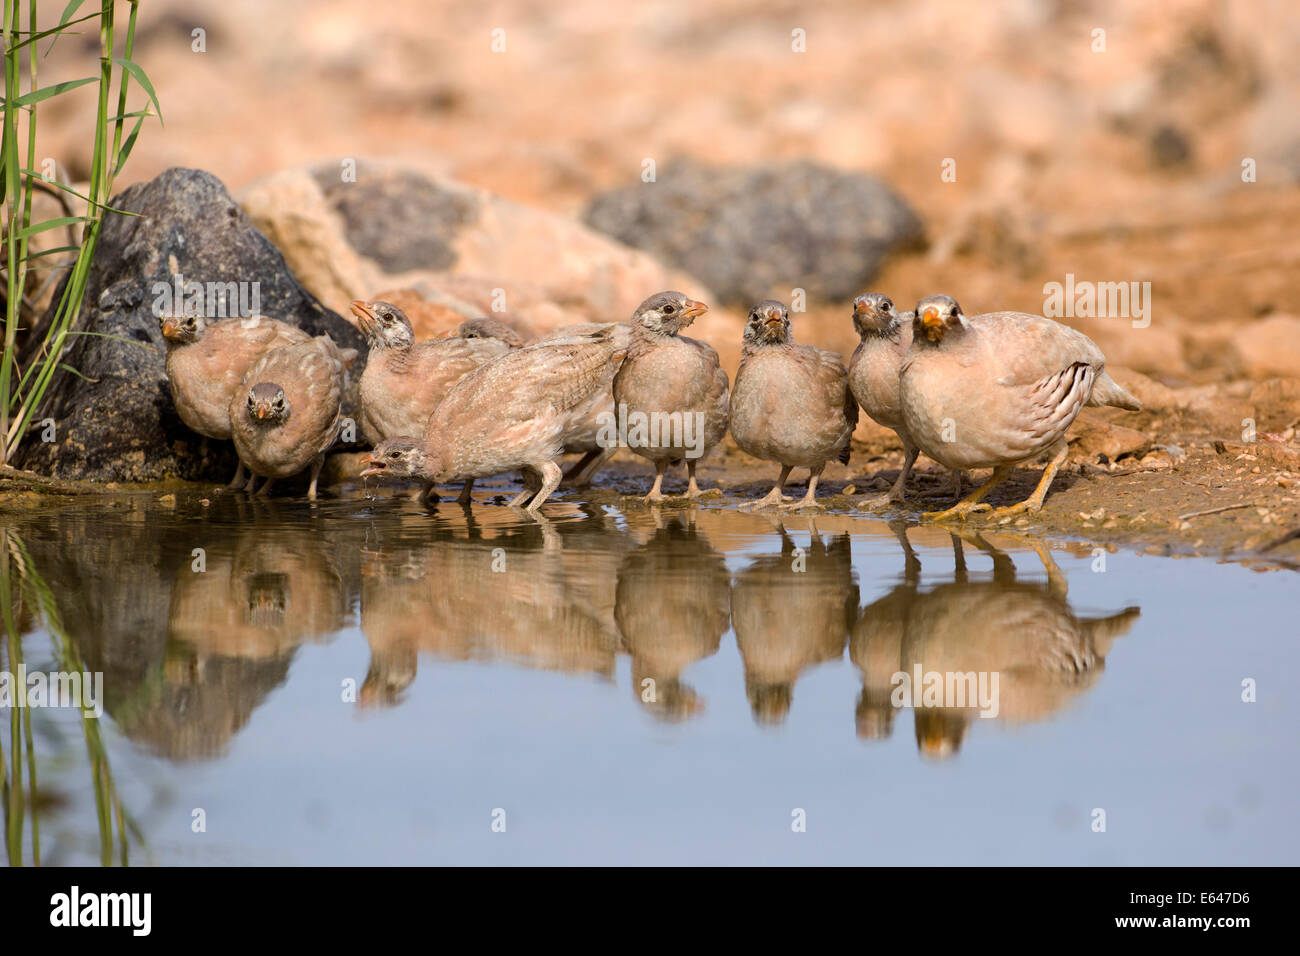 chicks of a sand partridge (Ammoperdix heyi) is a gamebird in the pheasant family Phasianidae of the order Galliformes, - Stock Image